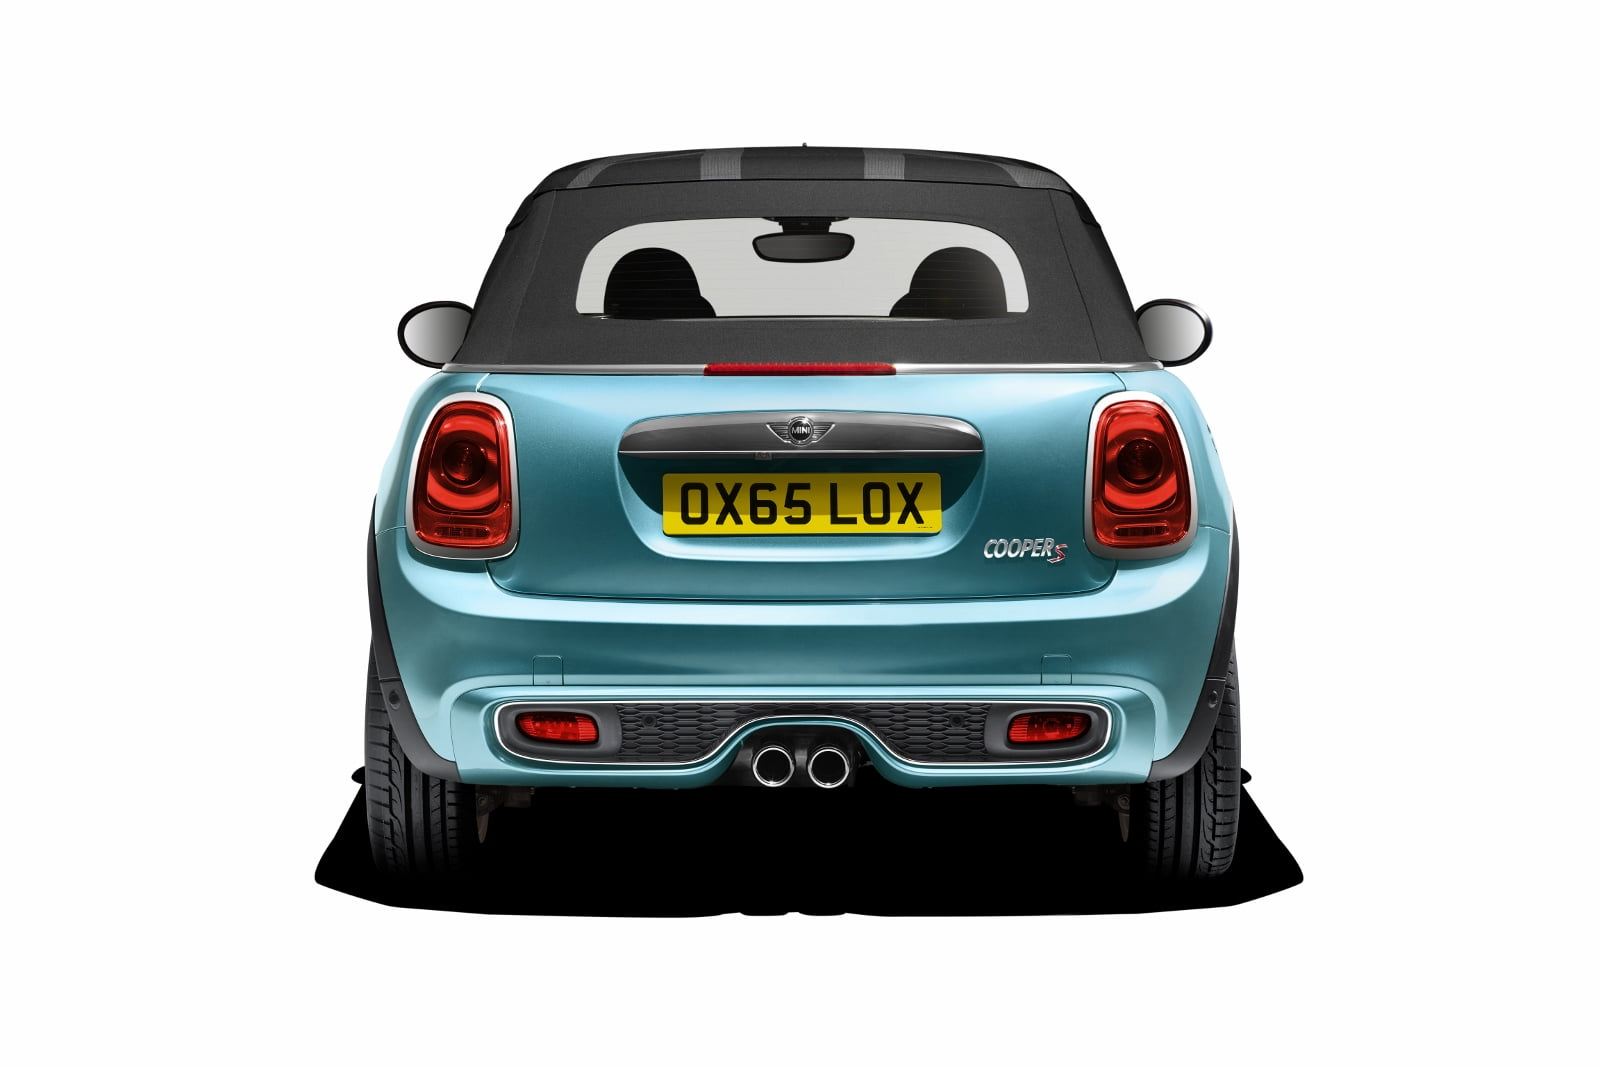 mini cooper cabrio leasen nu extra voordelig bij leaseroute. Black Bedroom Furniture Sets. Home Design Ideas